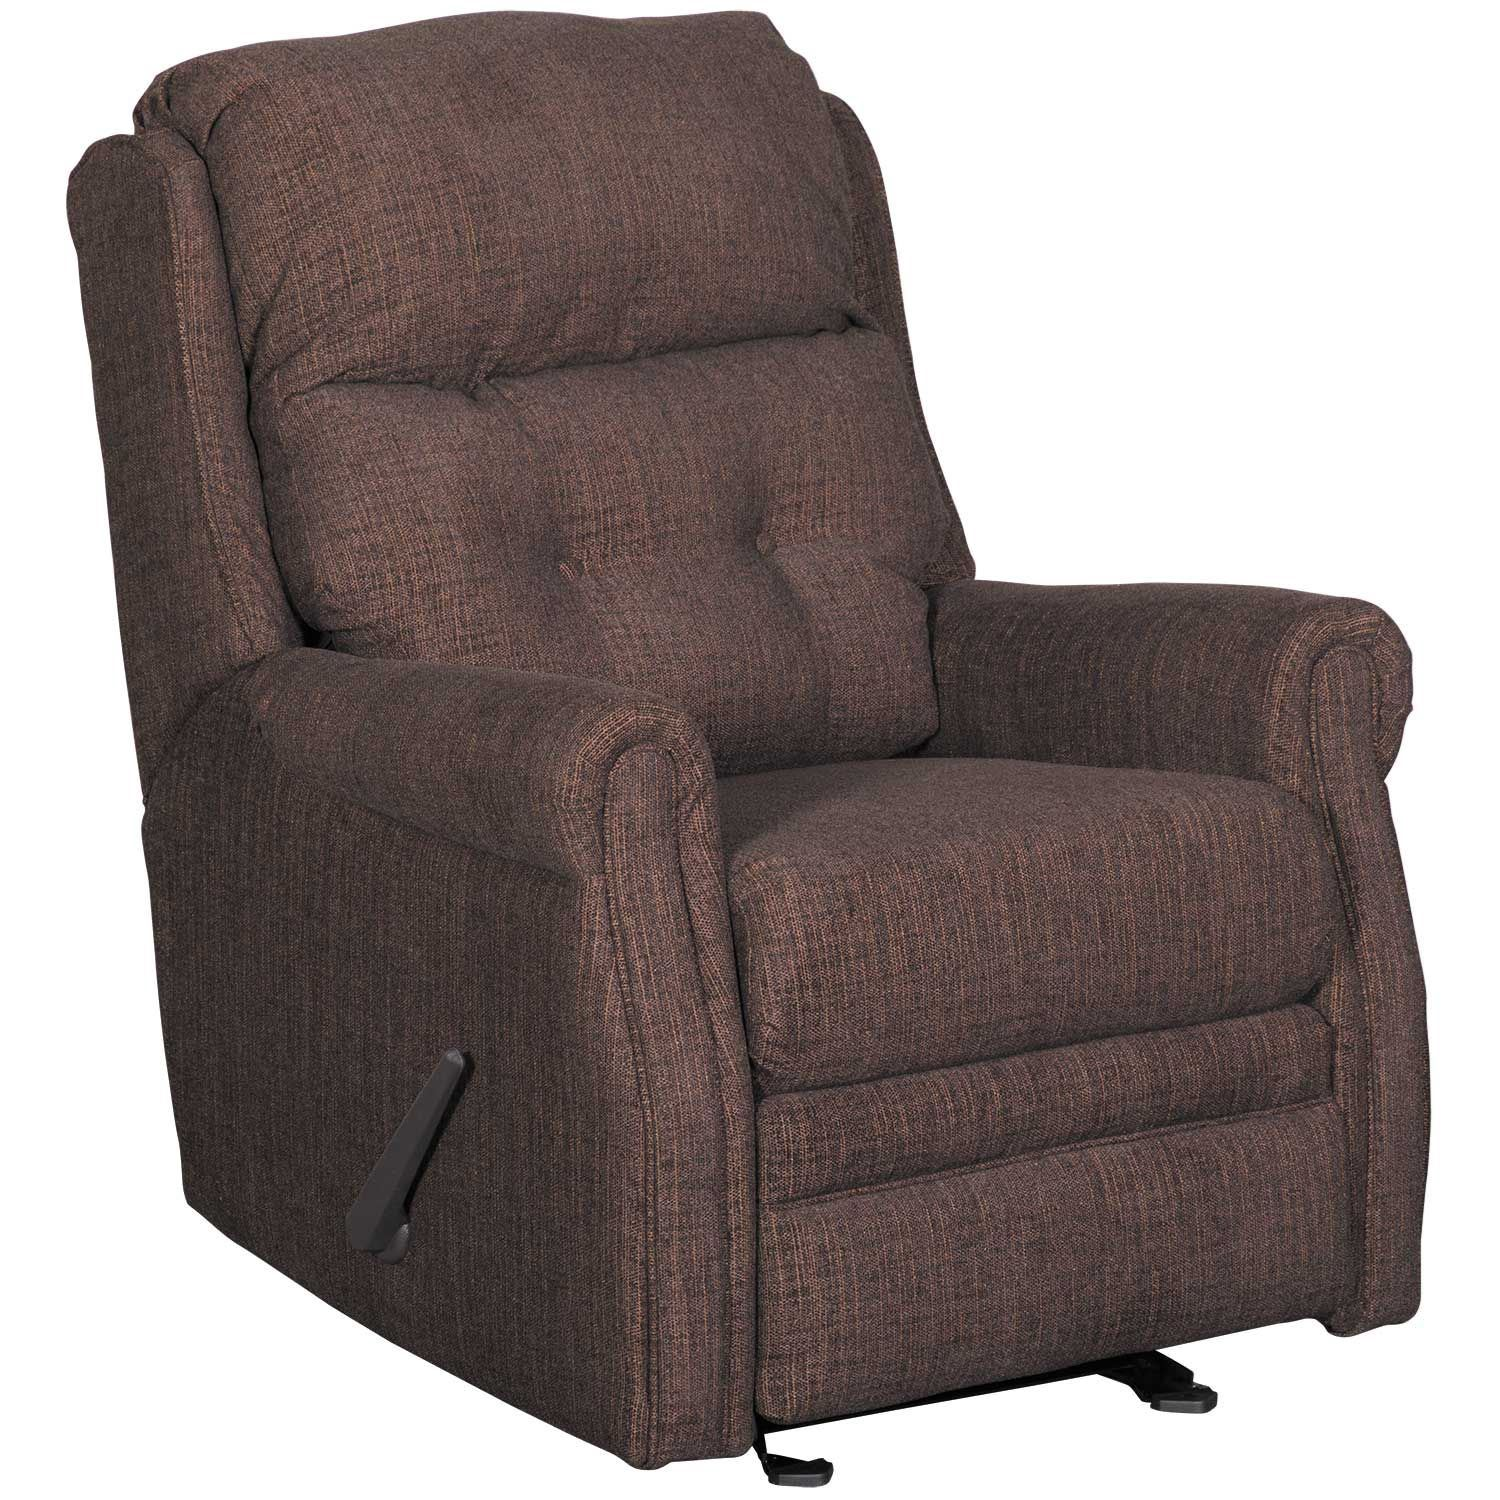 Ashley Furniture Recliner Chairs Penzberg Brown Glider Recliner